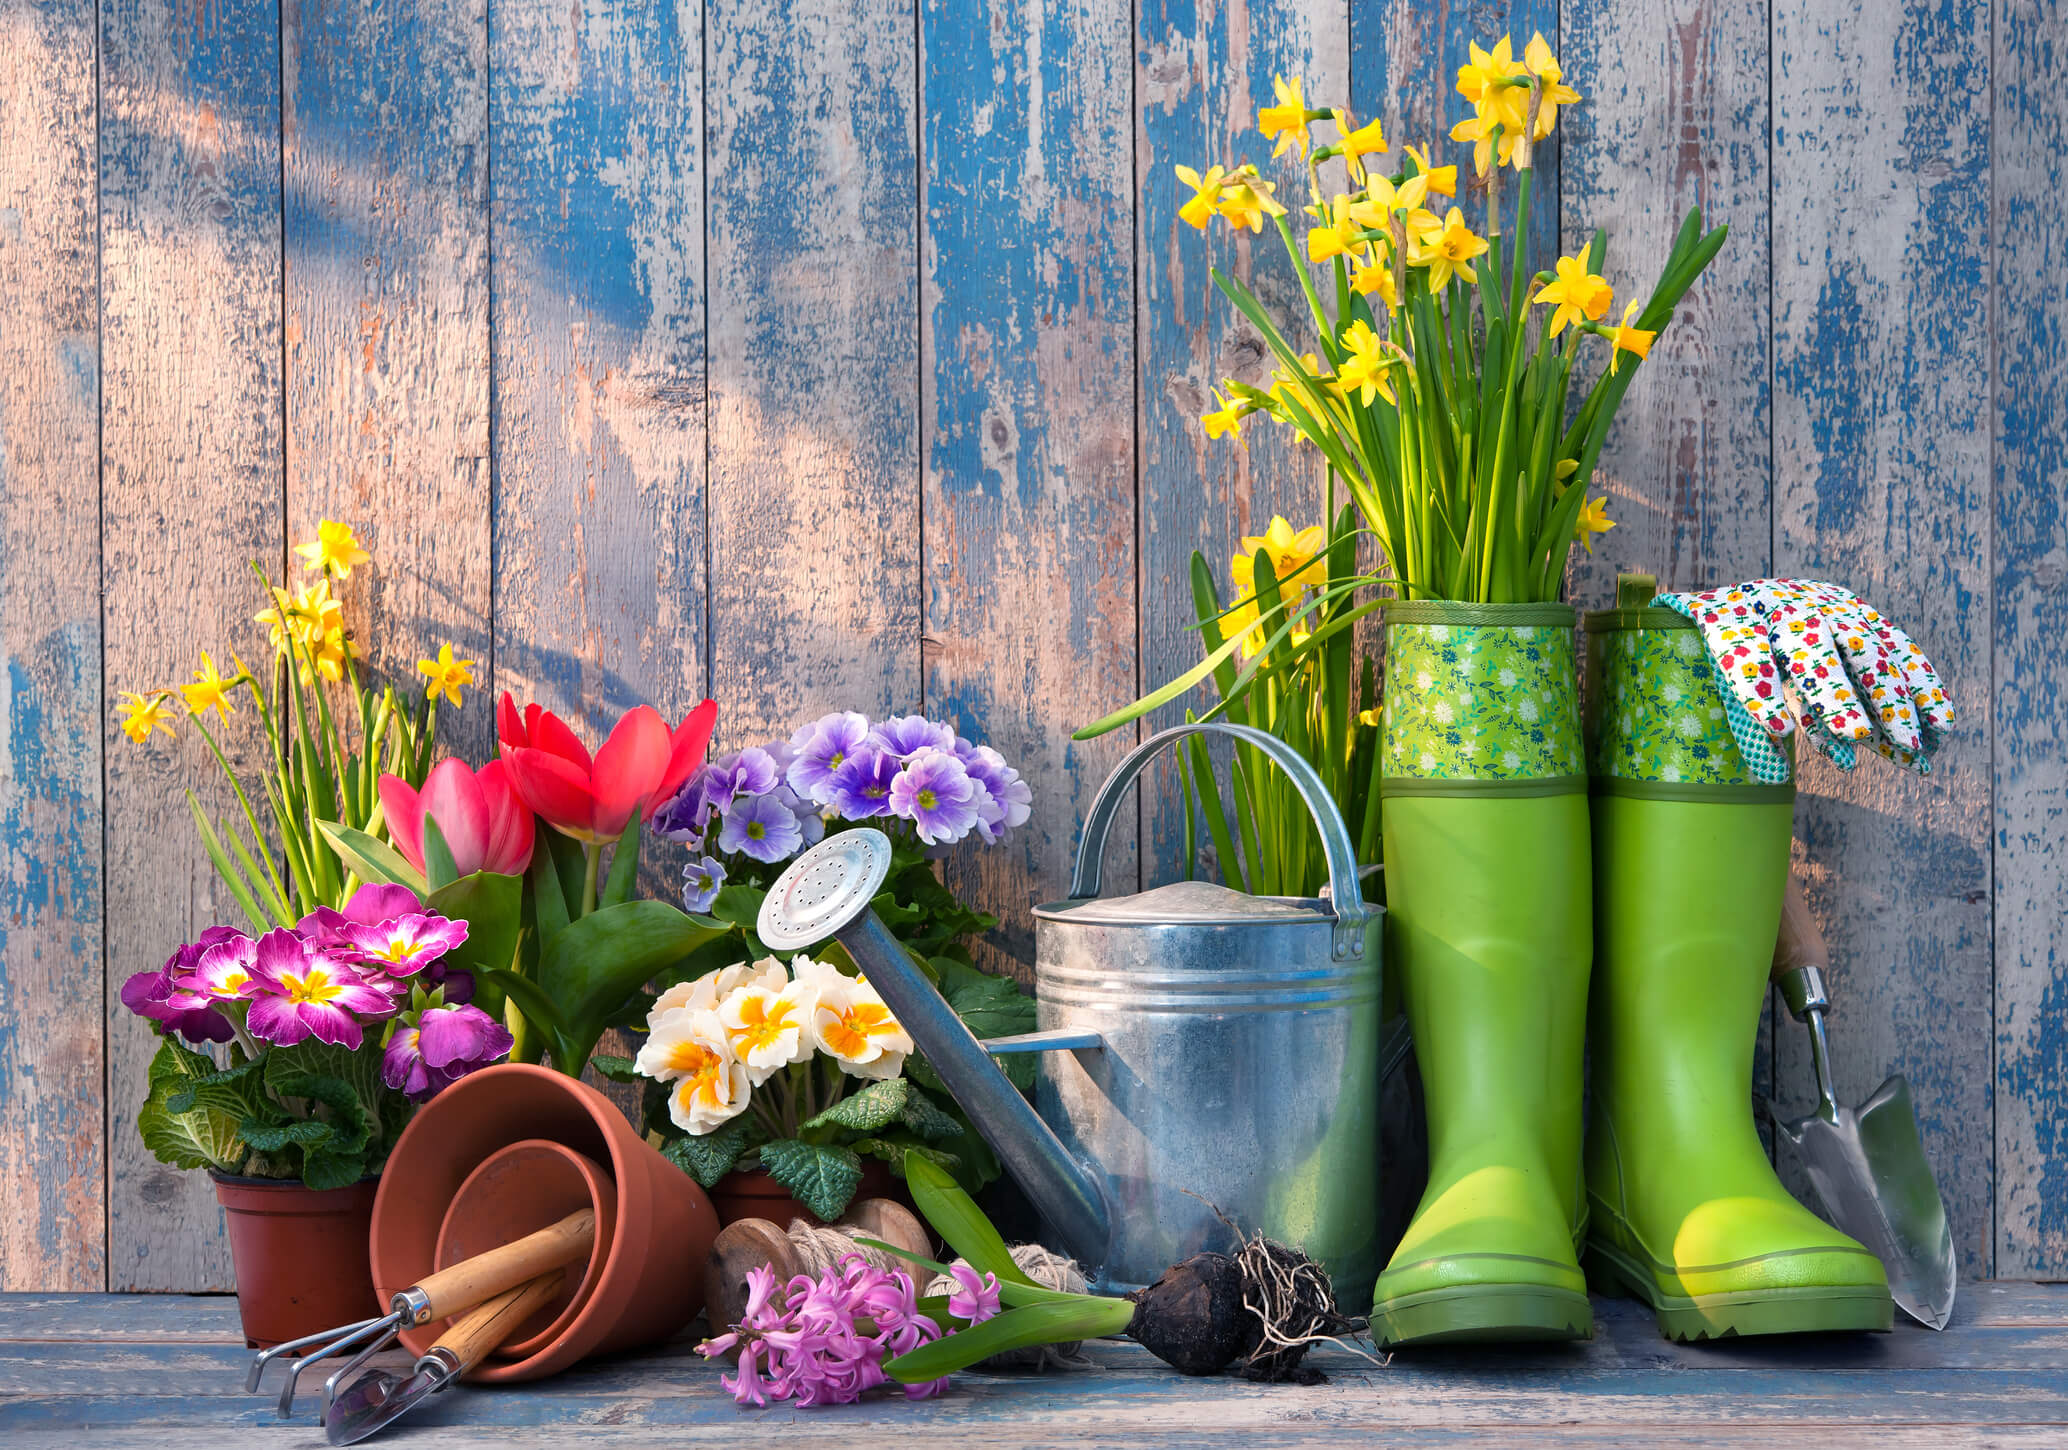 Popular Products to Buy from Your Local Garden Nursery